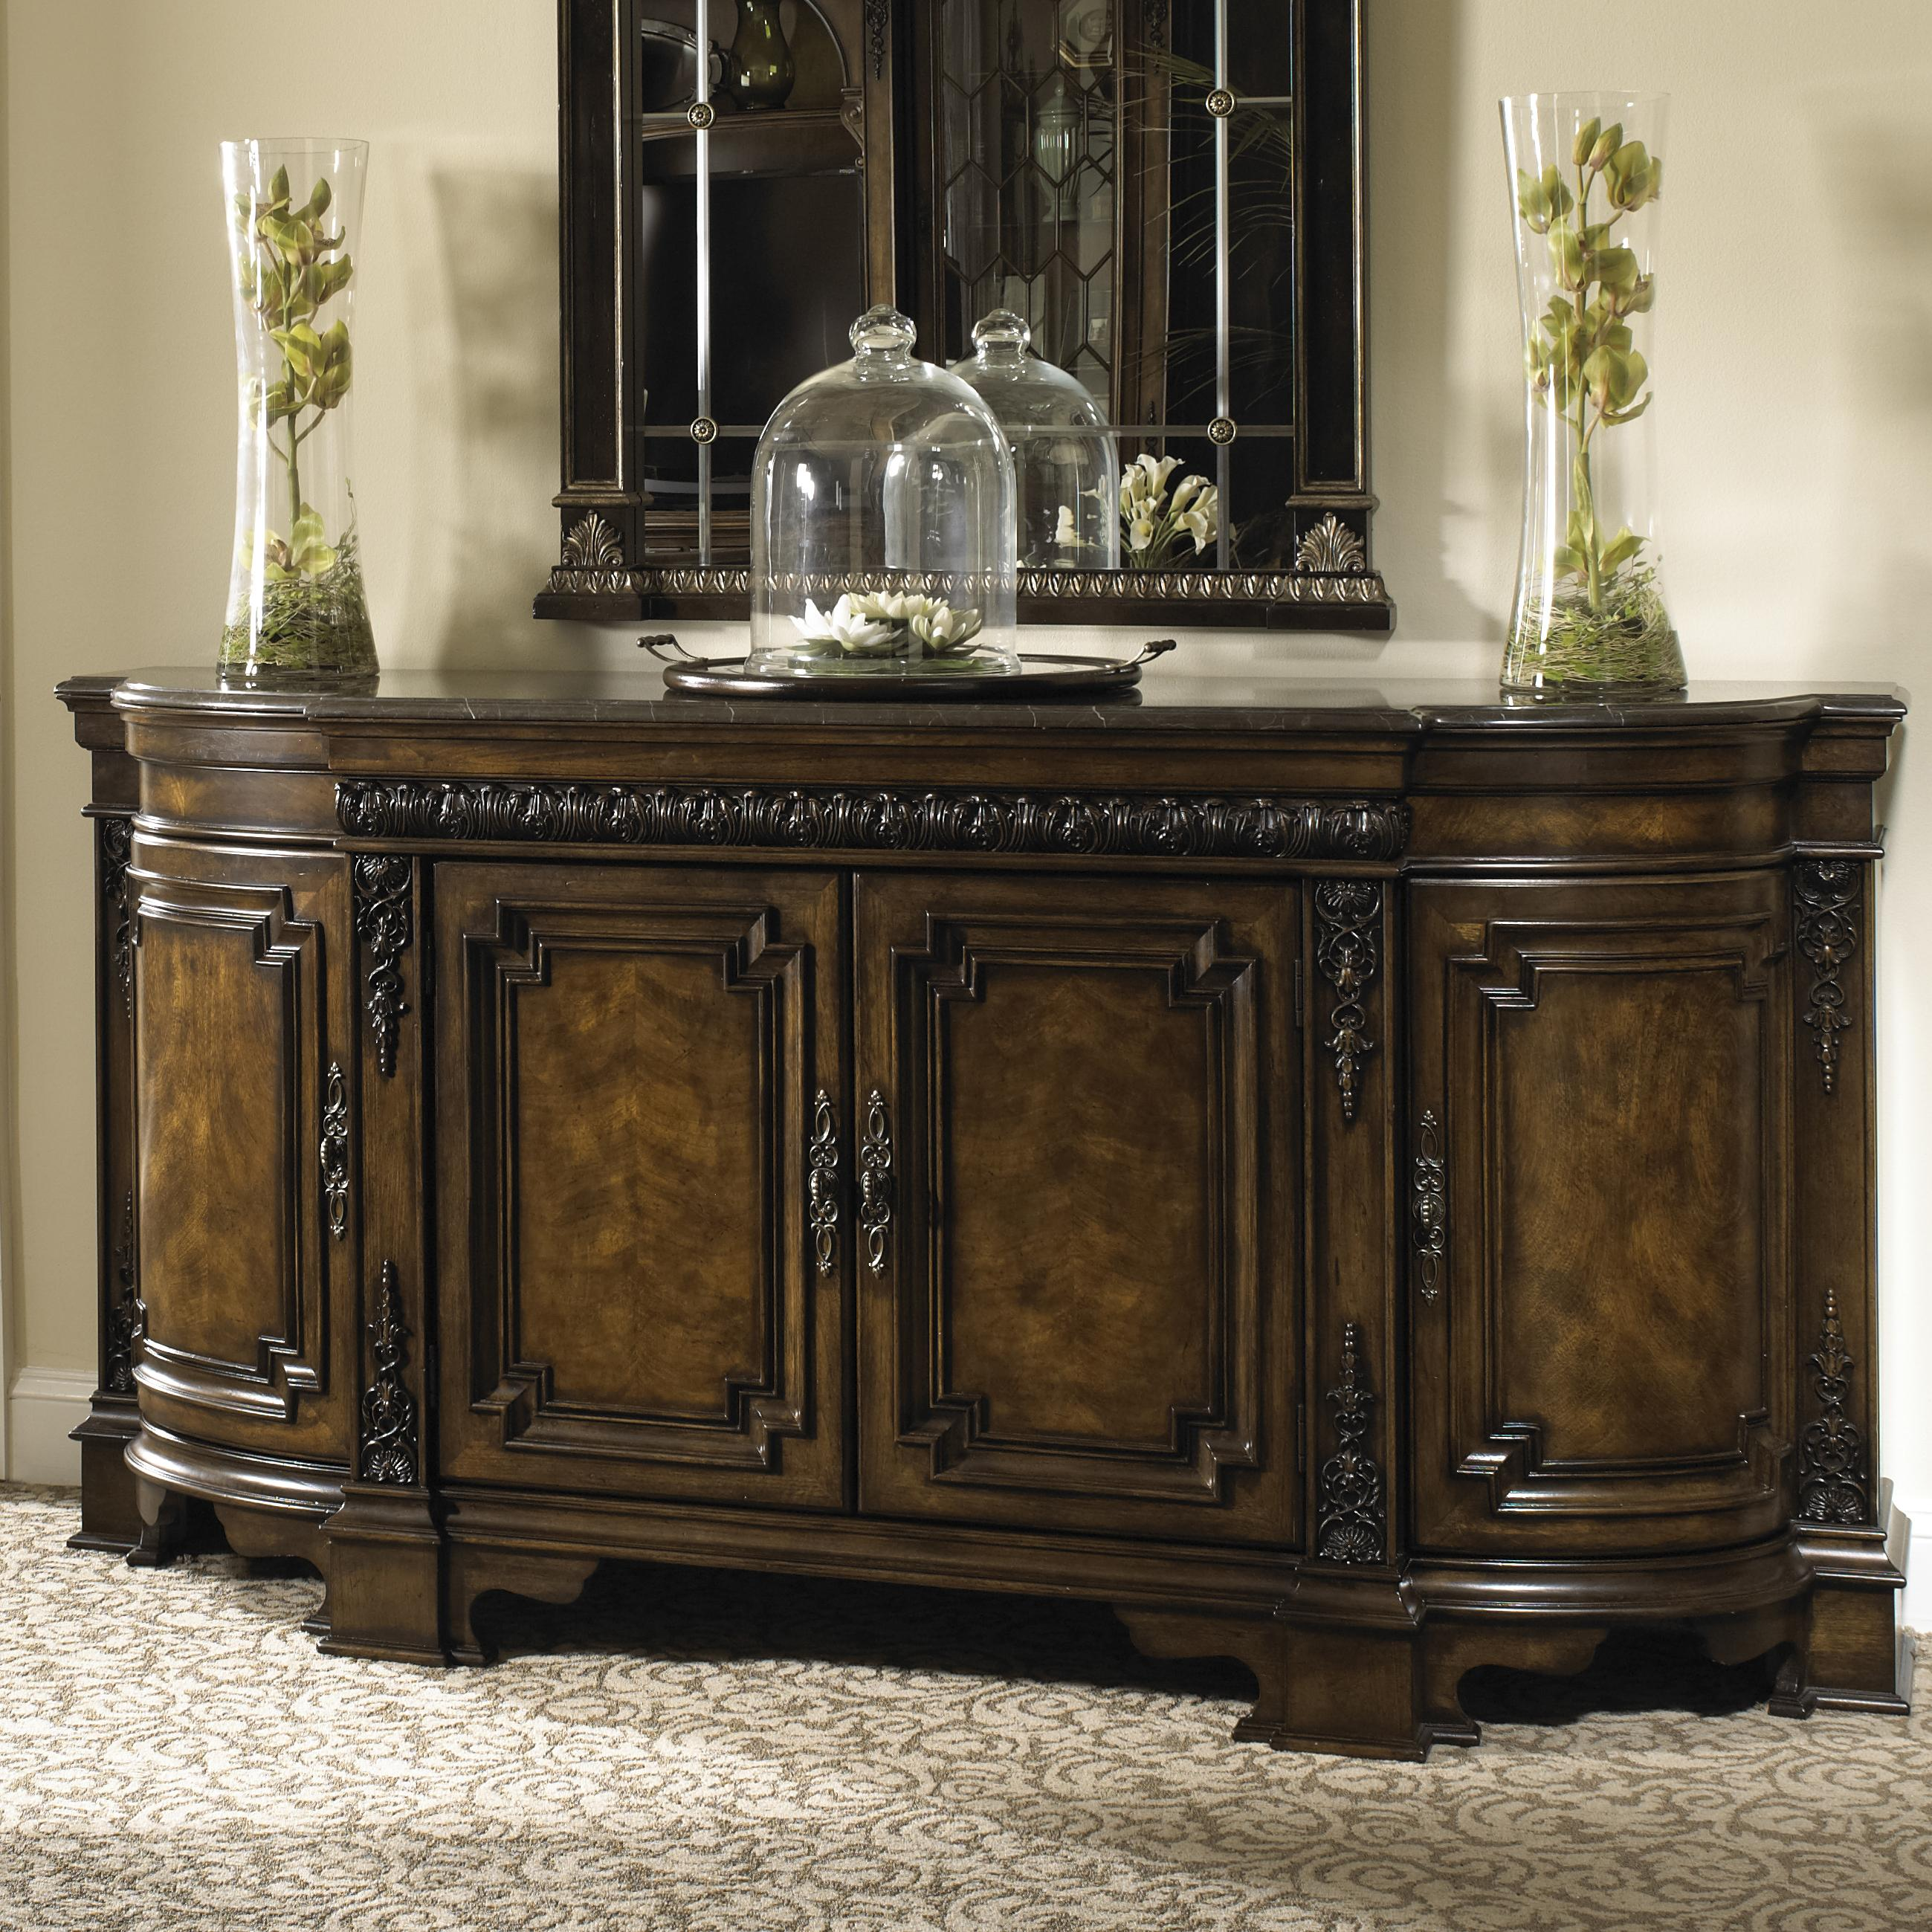 Dining Credenza With Wood Top Gallery Rail And Silverware Storage Buffet